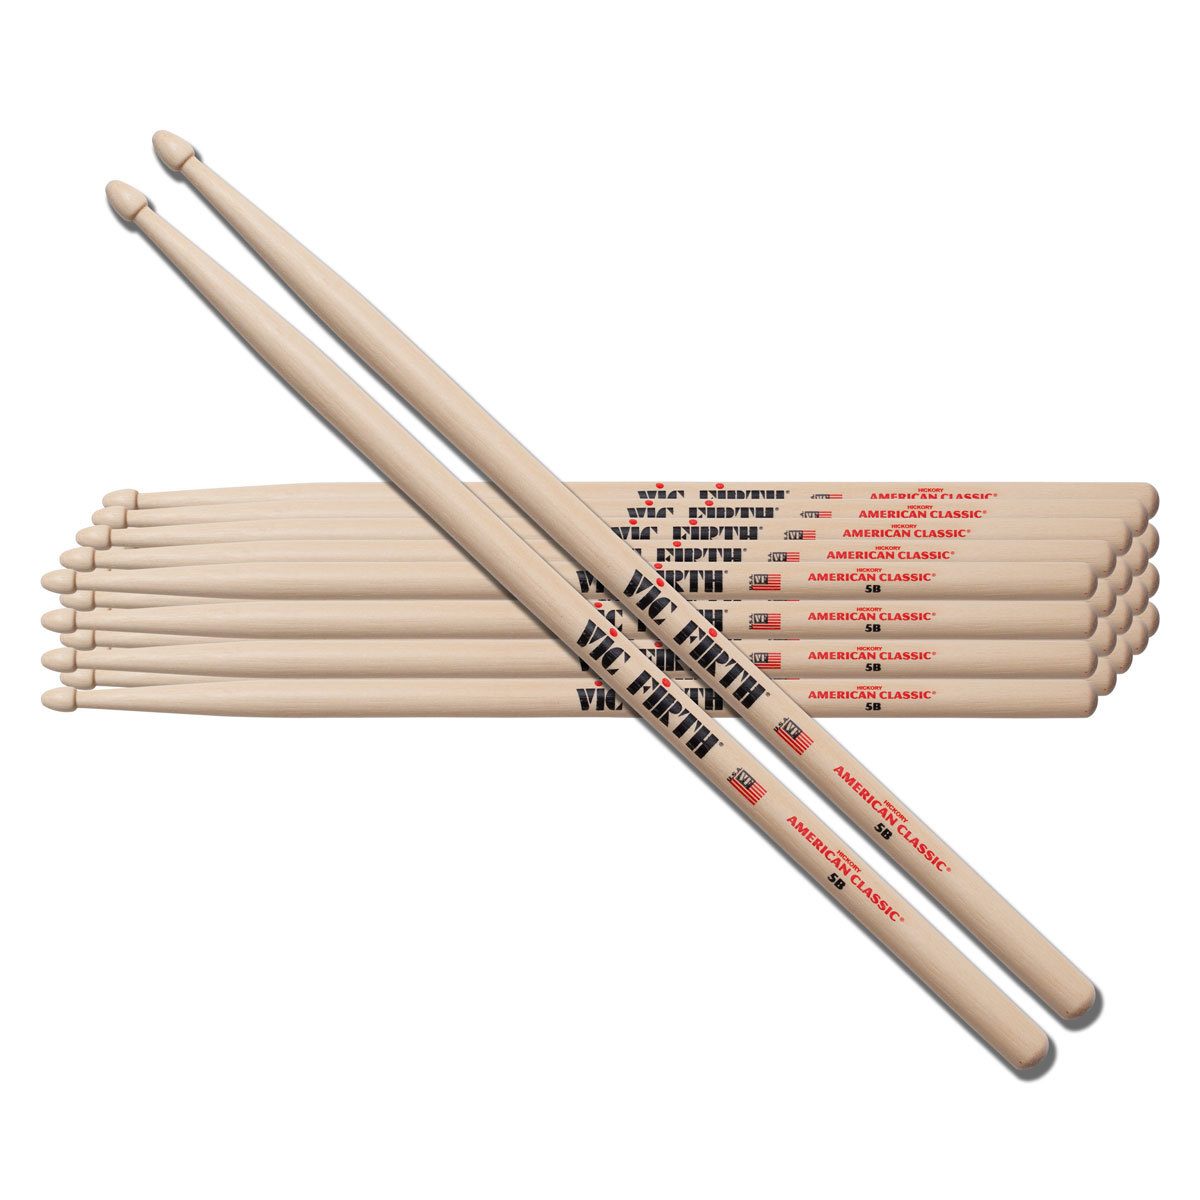 957ea029808 Vic Firth American Classic 5B Drumsticks 12 Pack - Choose Tip